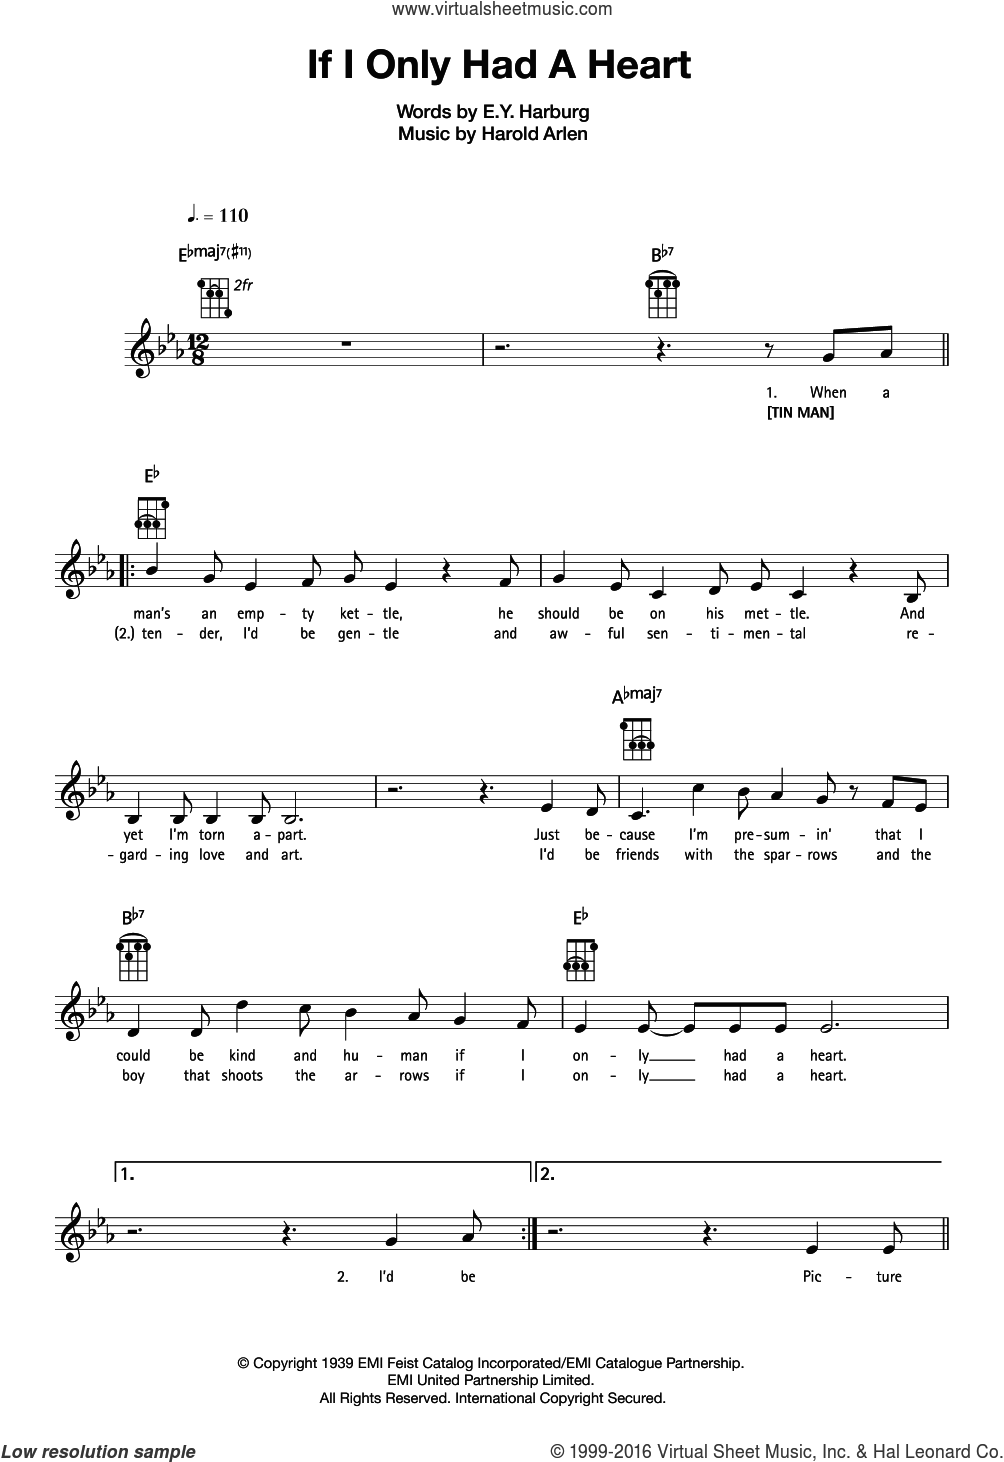 If I Only Had A Heart sheet music for ukulele by Harold Arlen and E.Y. Harburg, intermediate skill level